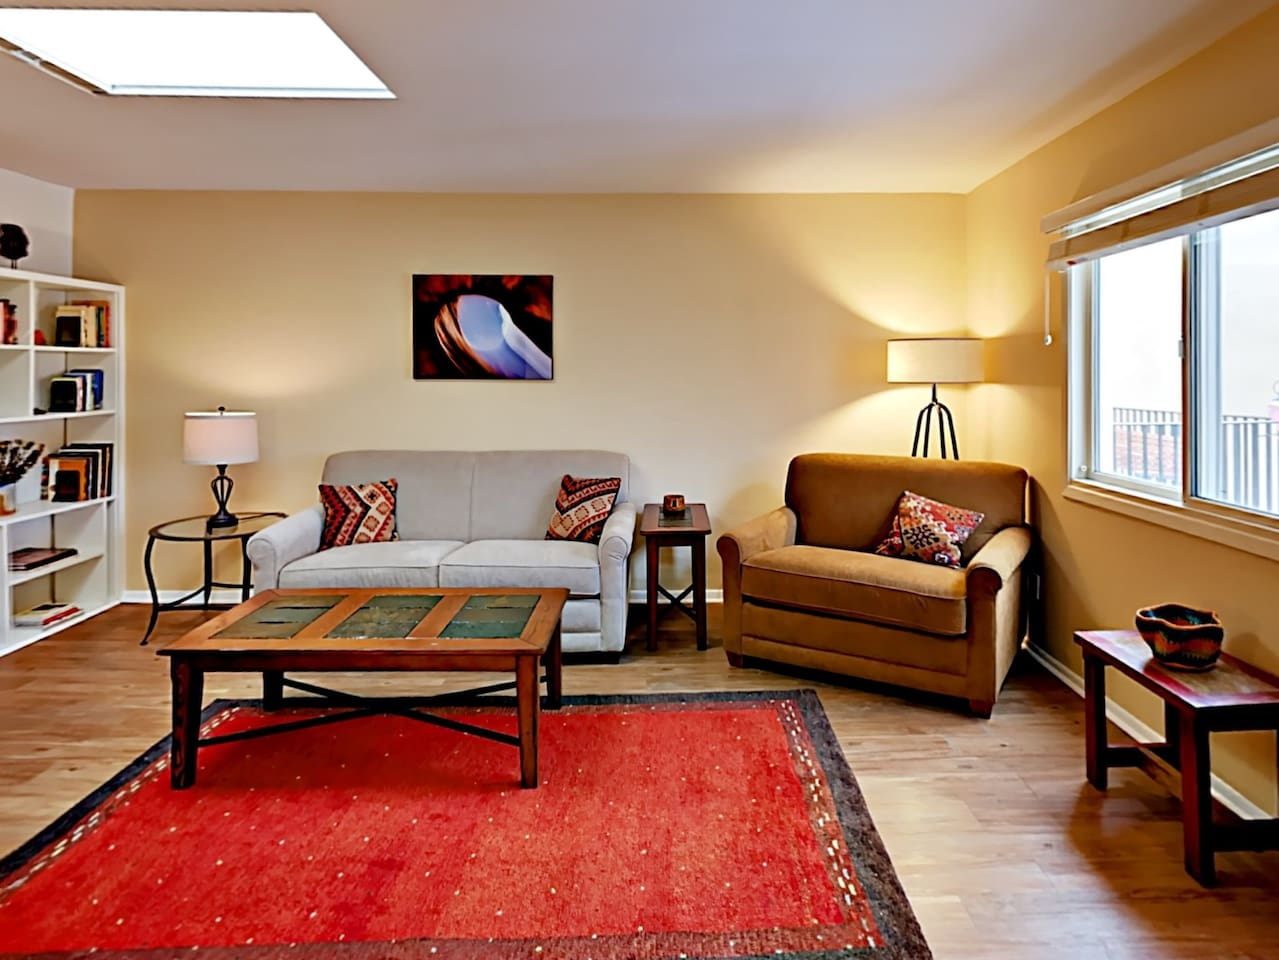 Welcome to Santa Fe, NM! Your rental is professionally managed by TurnKey Vacation Rentals.